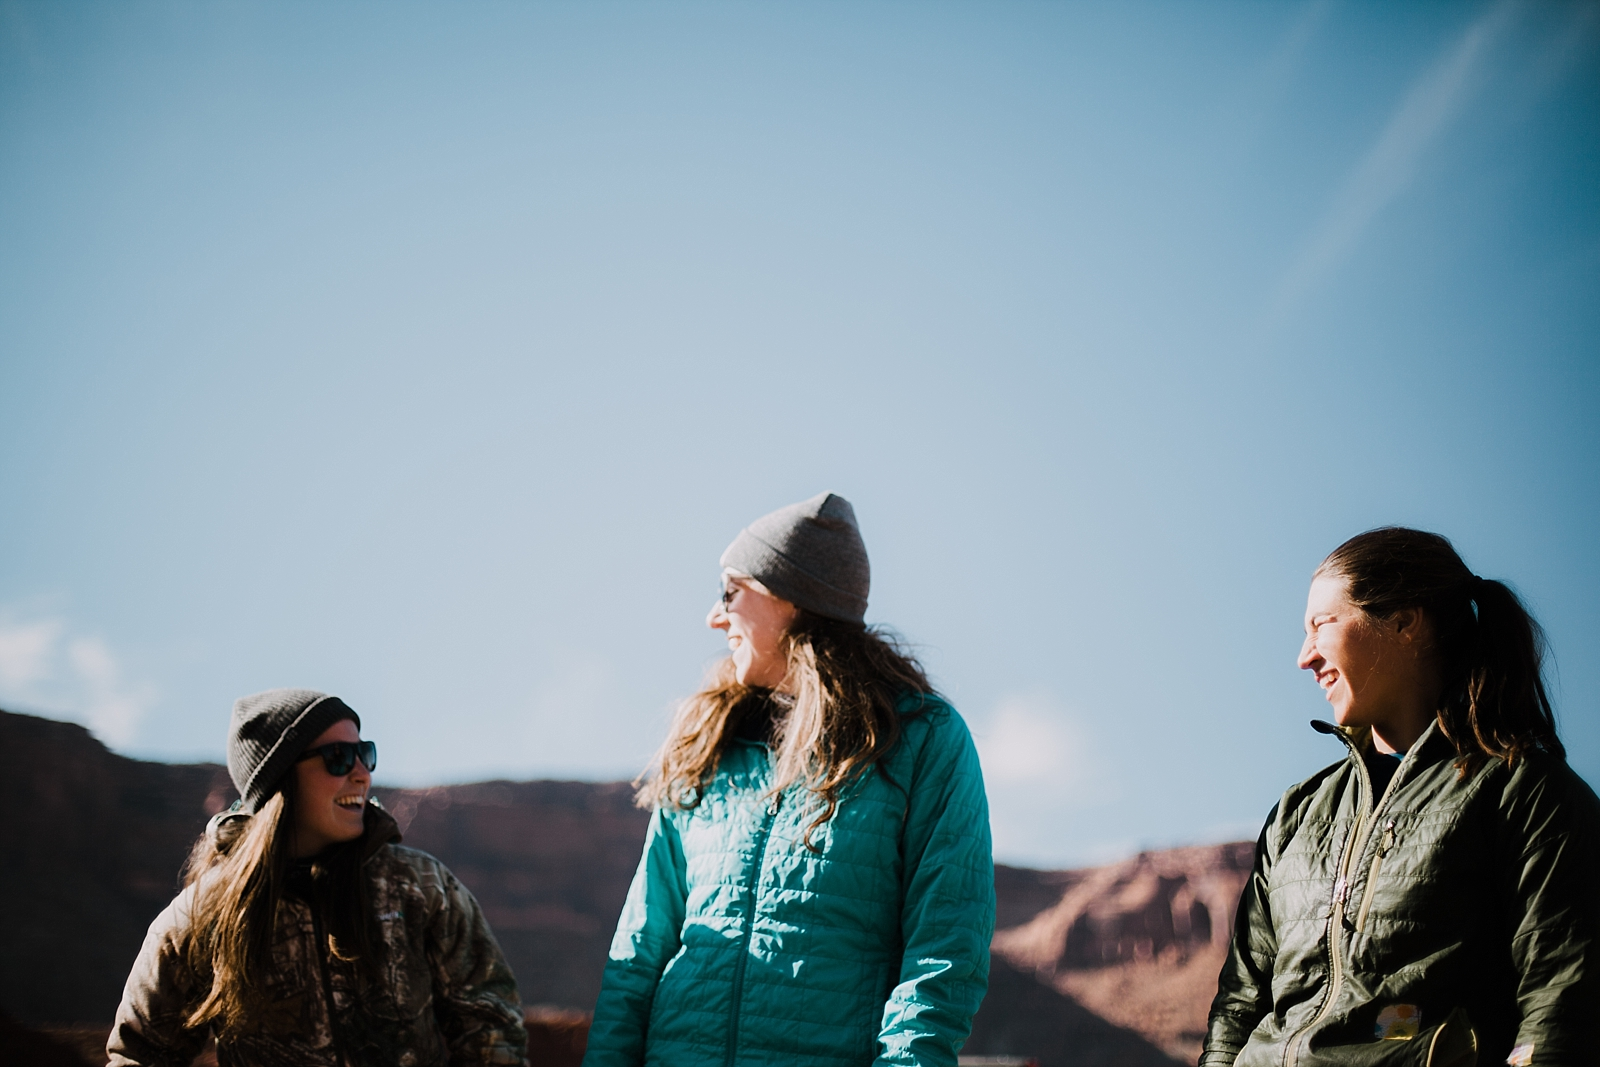 moab-photographer-camp-couples-adventure-session_0003.jpg